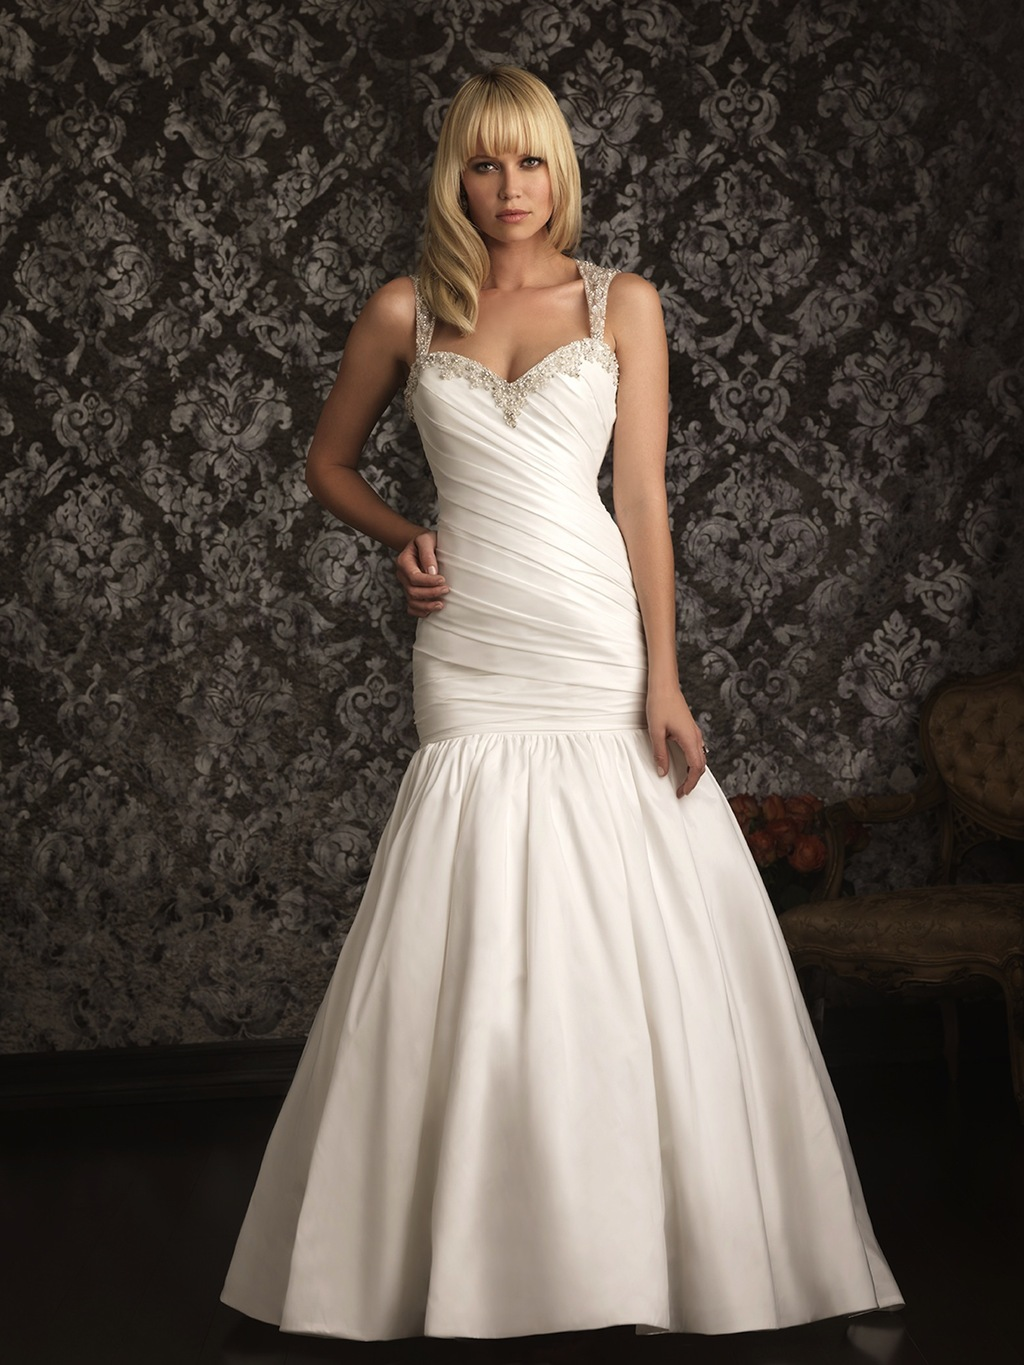 Allure-bridals-wedding-dress-bridal-gown-allure-collection-2013-9020f.full